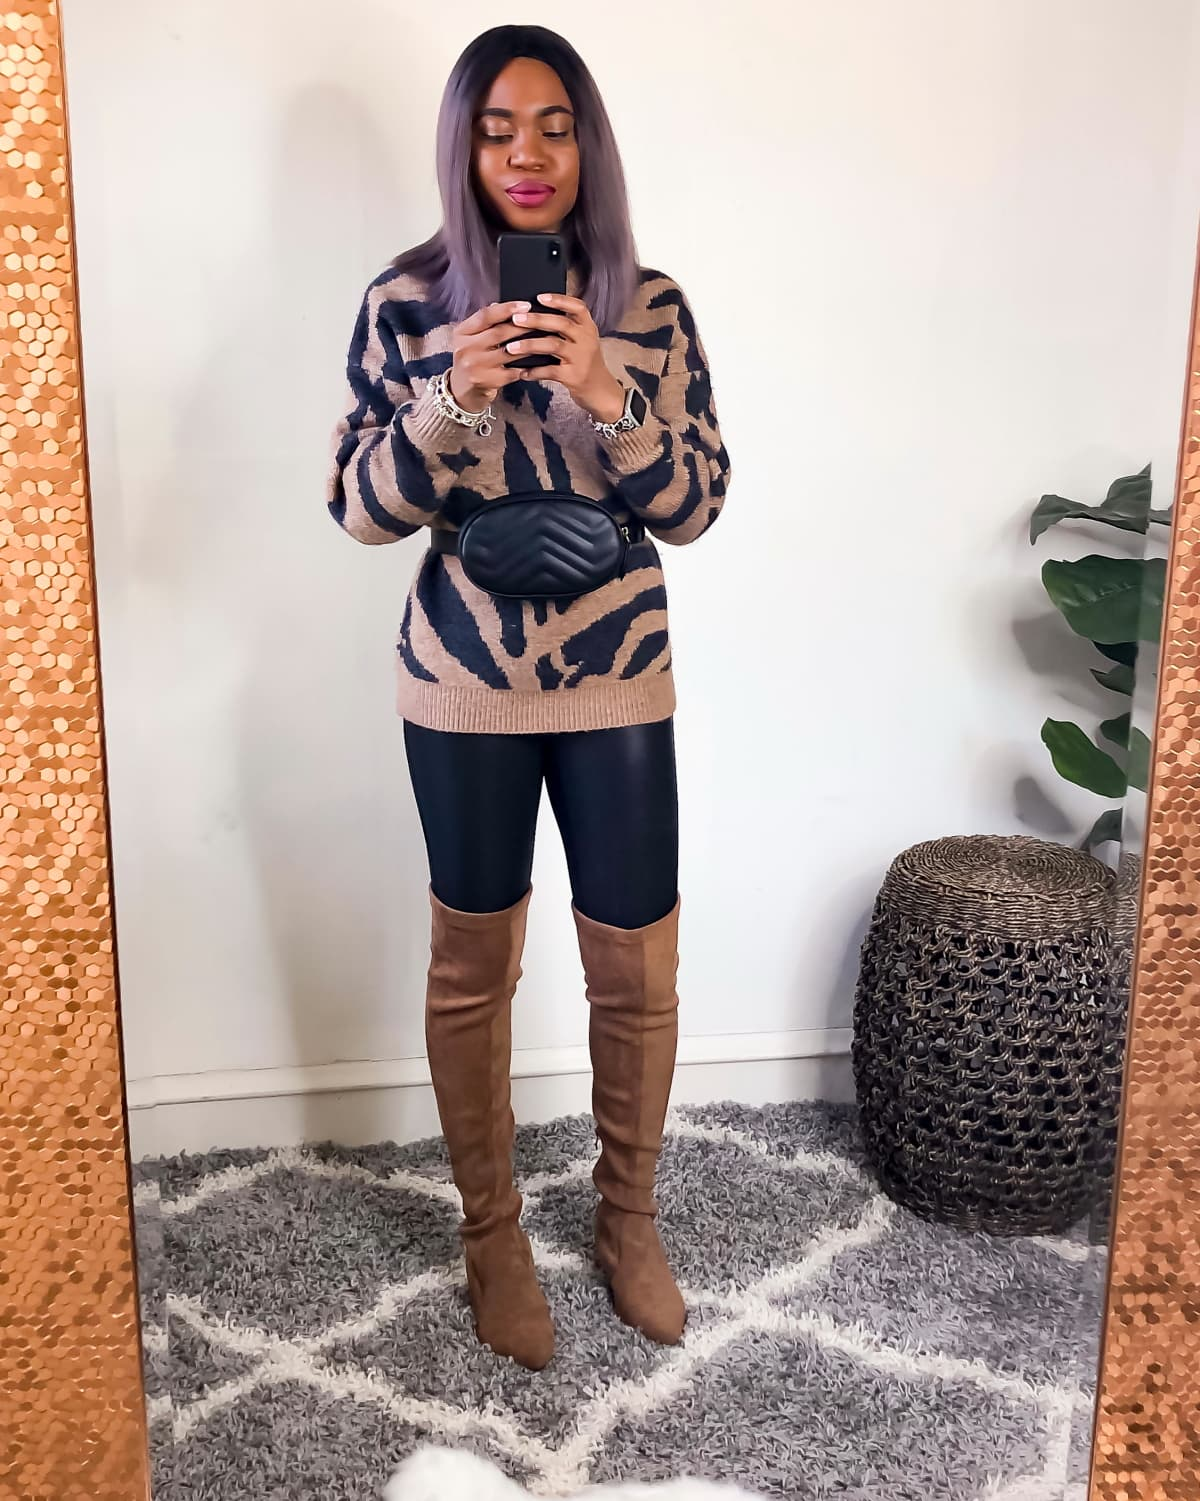 Tiger Print Shirt for women - Styled with faux leather leggings and on-trend over the knee boots and stylish belted waist purse